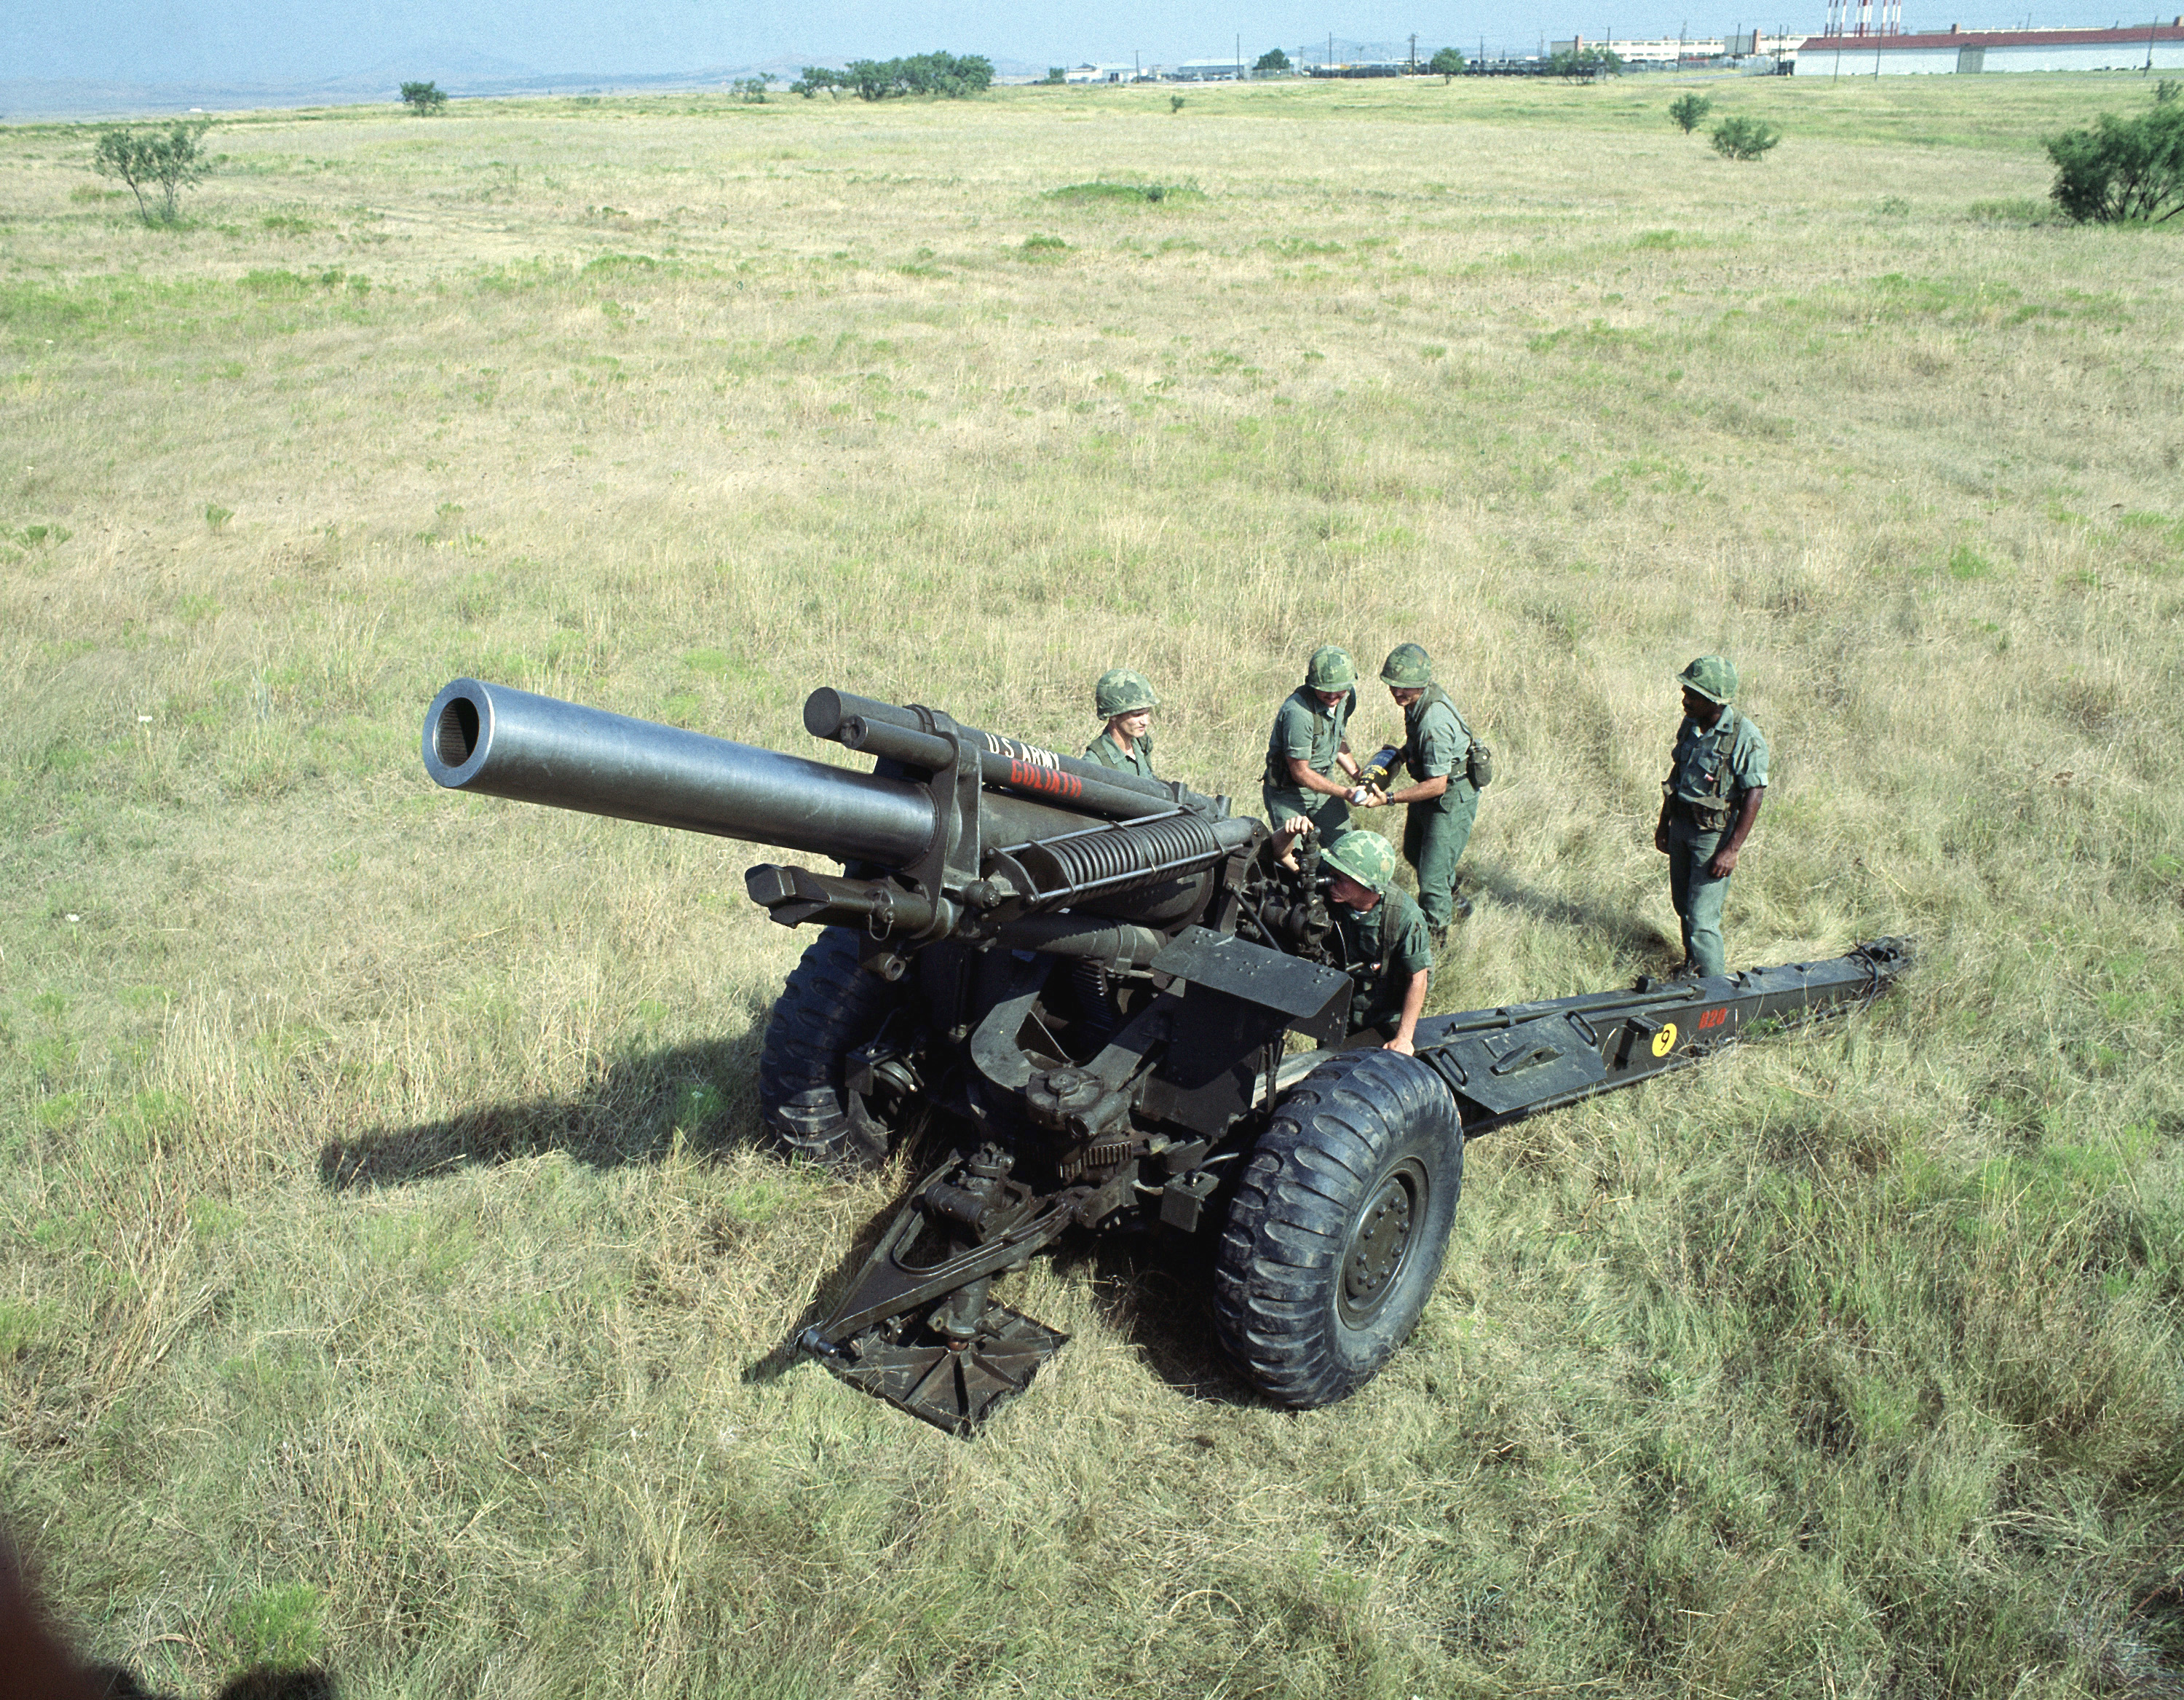 MEDVED от Кейта Томпсона USArmy_M114_howitzer